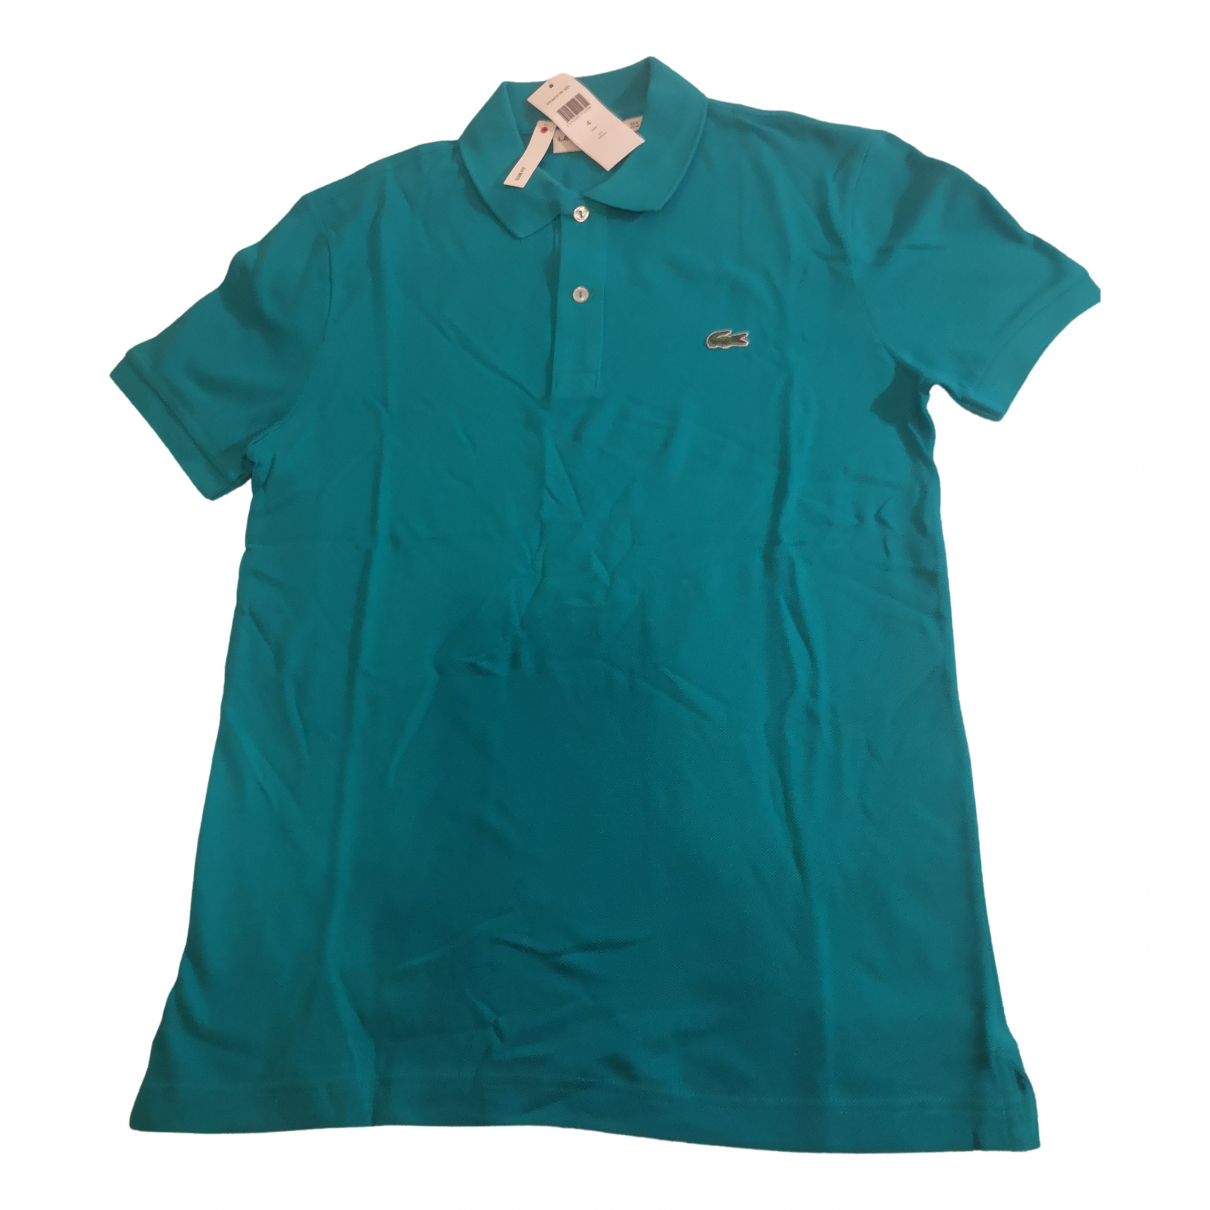 Lacoste N Blue Cotton Polo shirts for Men 4 0 - 6